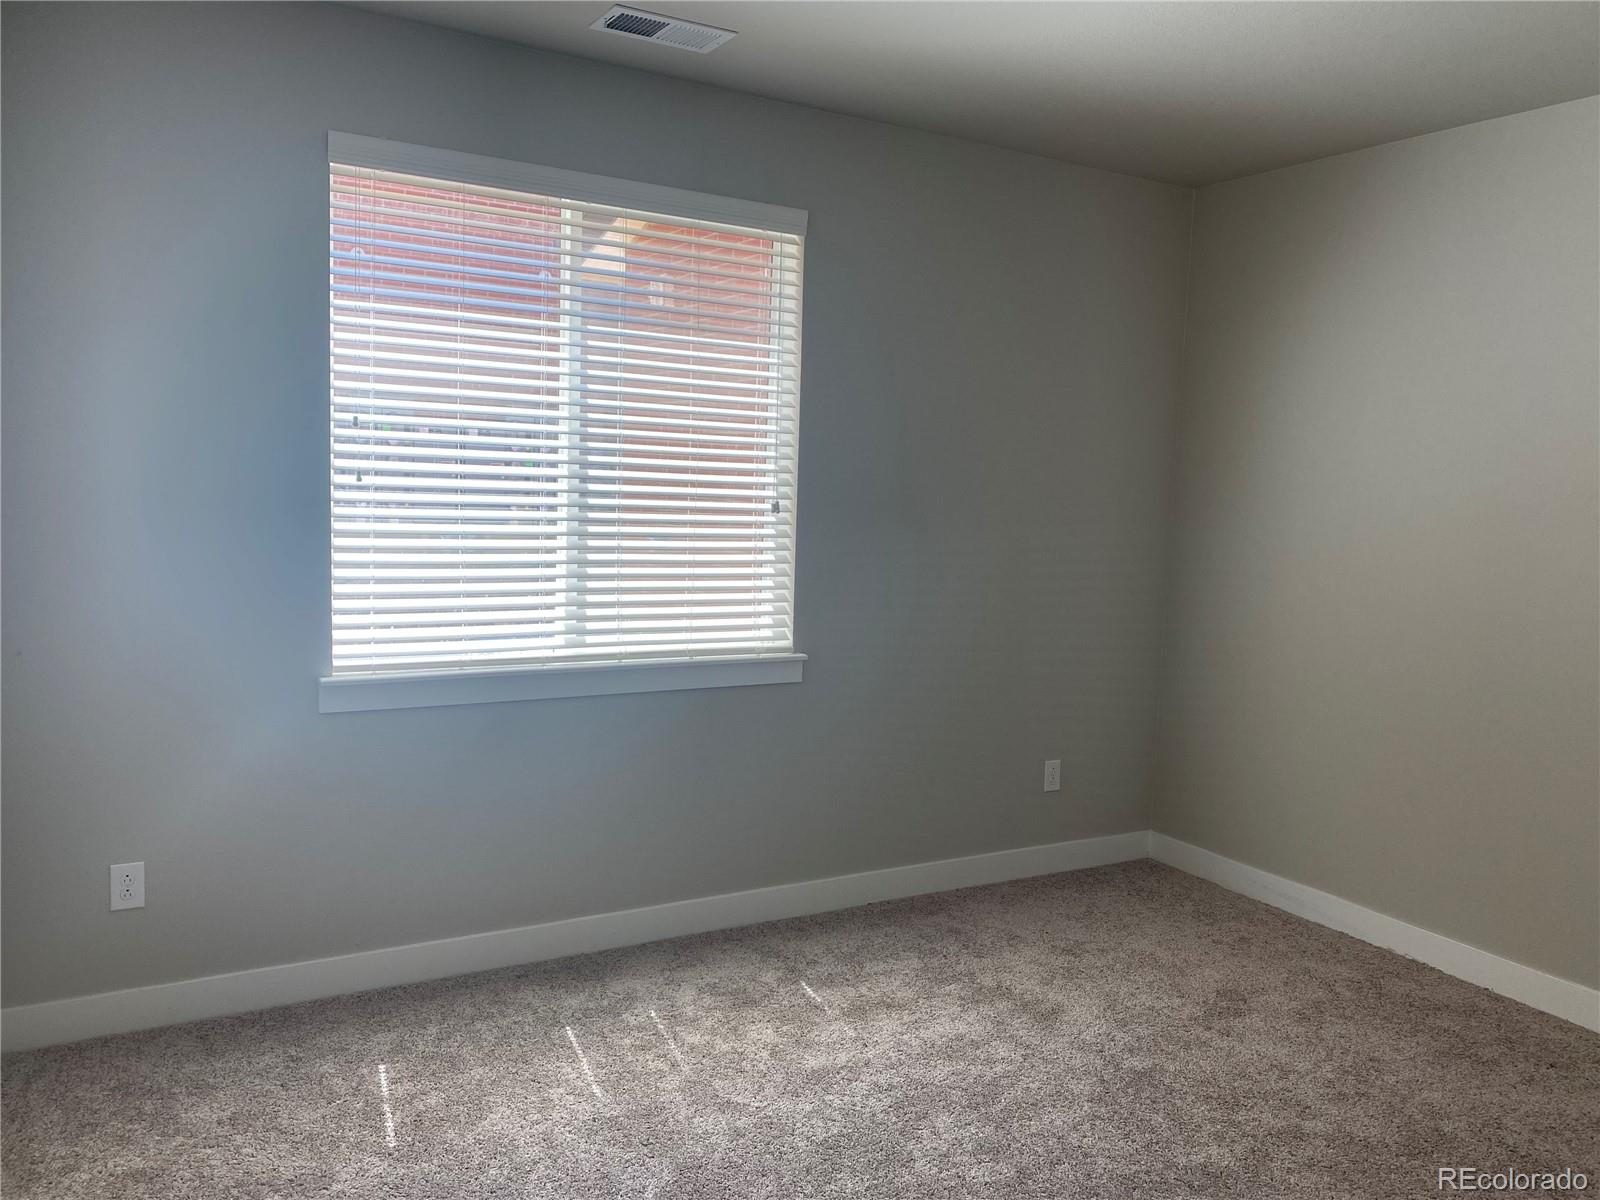 MLS# 4439296 - 8 - 14331 E Tennessee Avenue #101, Aurora, CO 80012